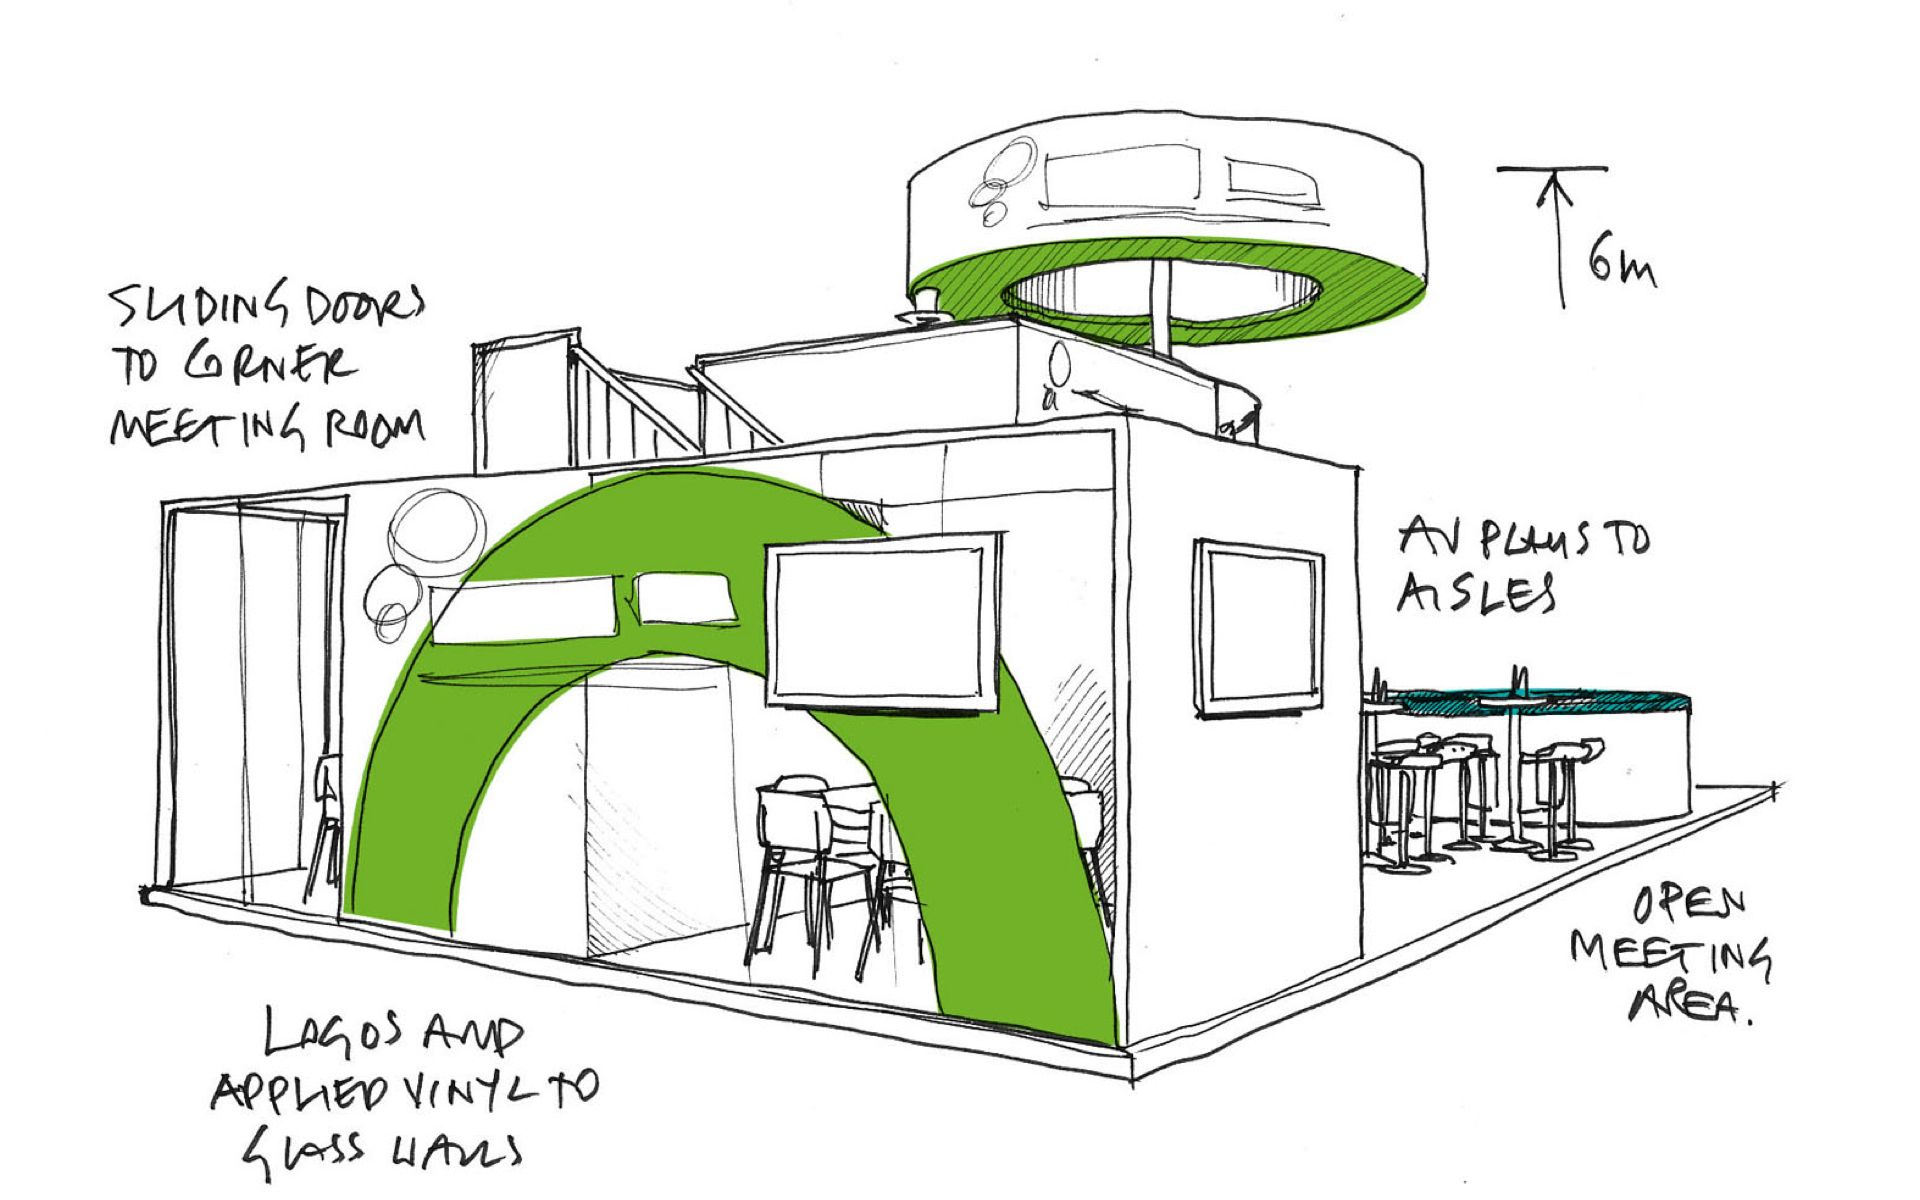 Exhibition Stand Design Drawings : Exhibition sketch google search